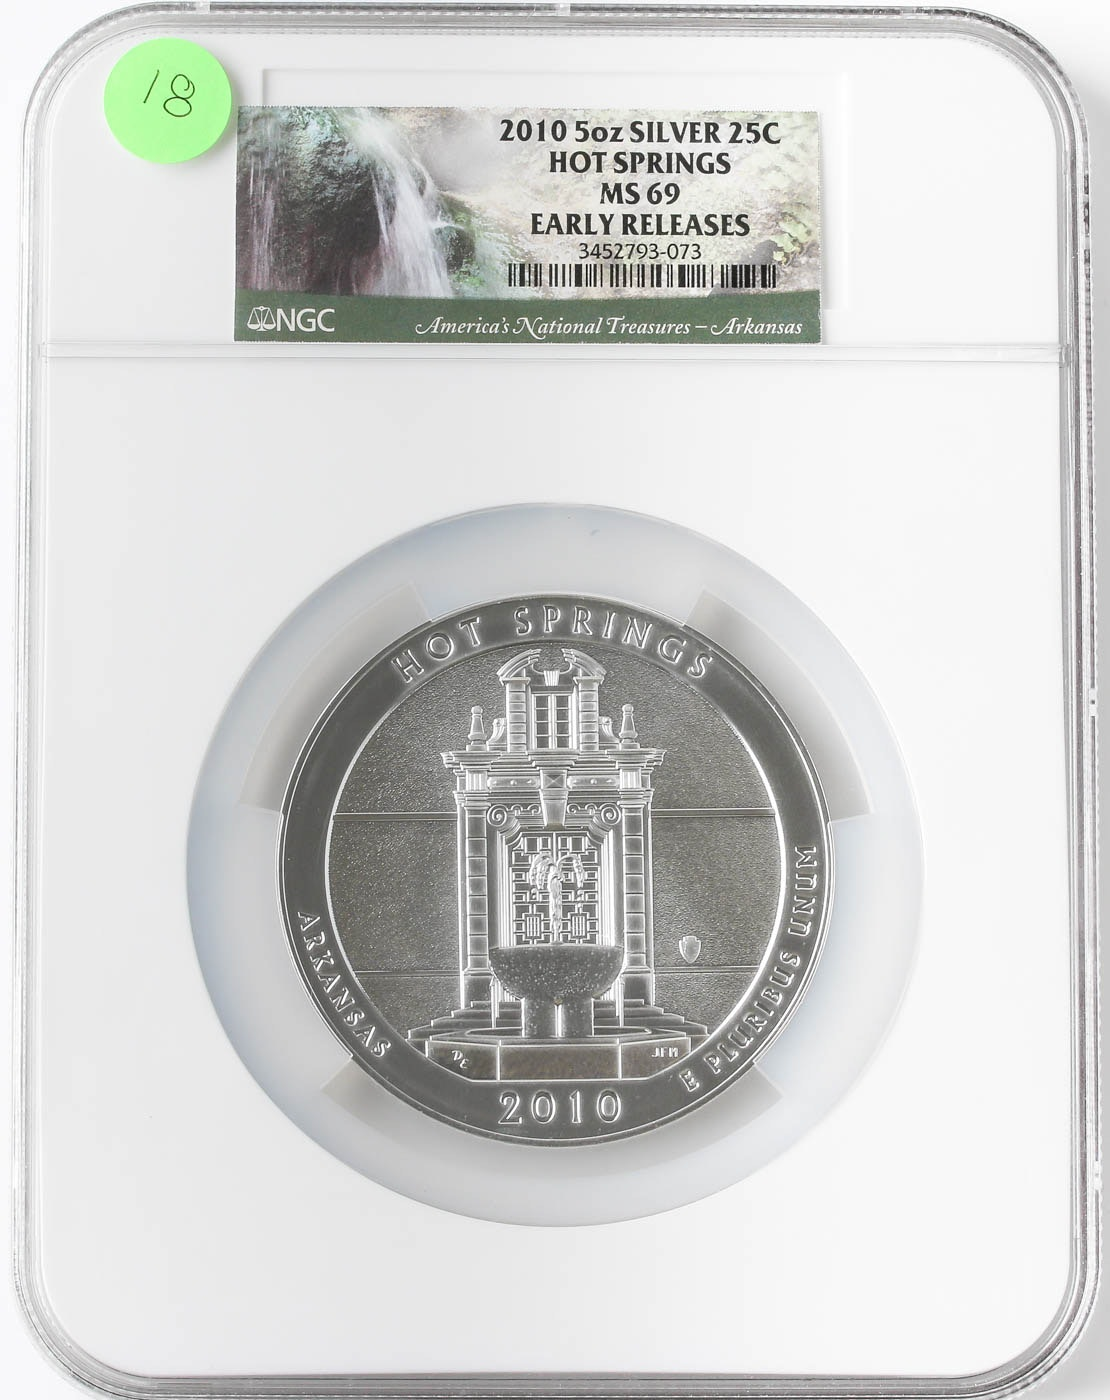 Graded MS69 (By NGC) 2010 5oz Silver 25 Cent Hot Springs American Coin